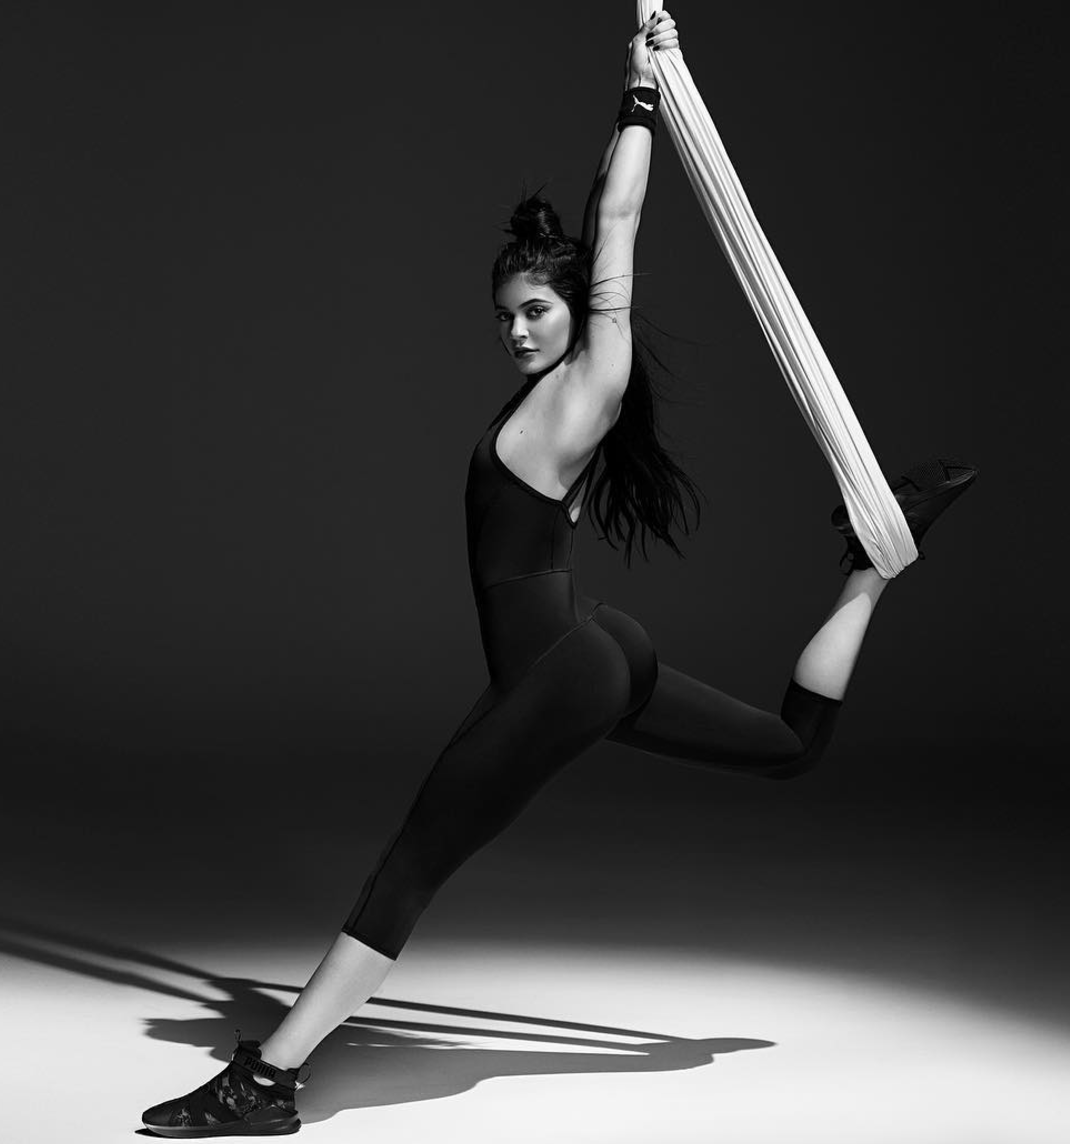 fd98019bd254a0 Puma s ballet-themed collection starring Kylie Jenner takes athleisure to  Swan Lake levels